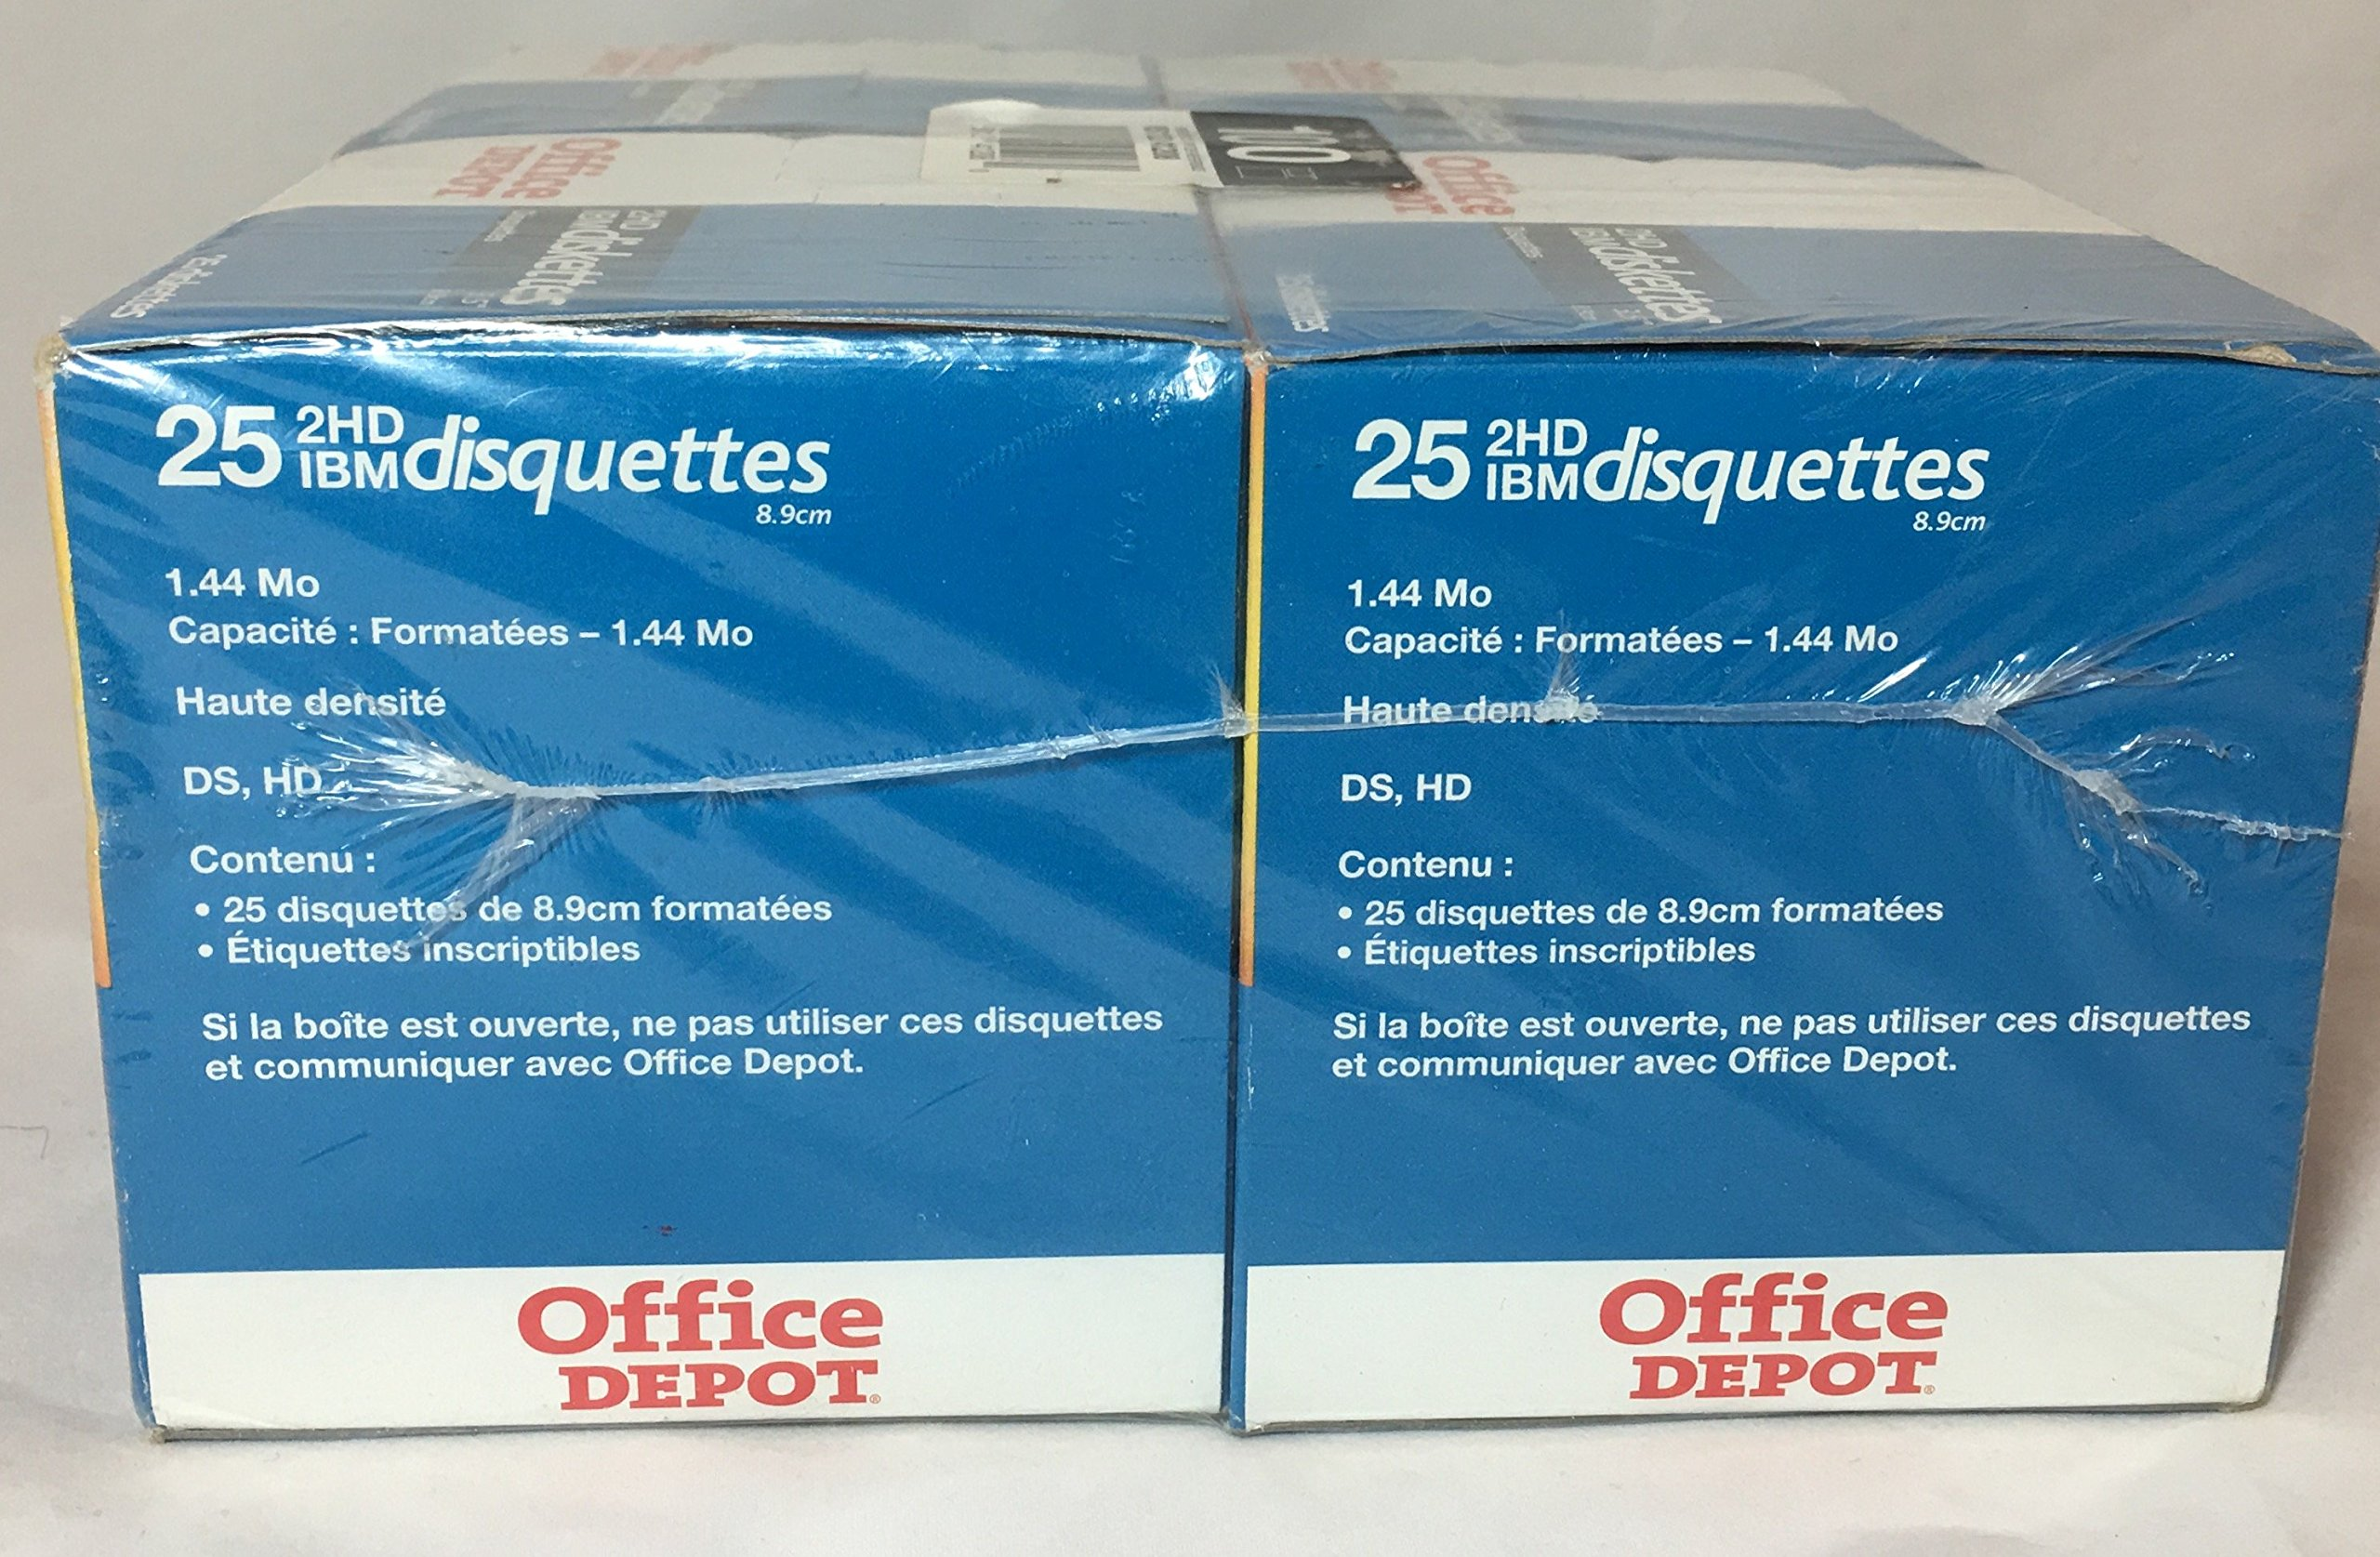 Office Depot Brand 3 1/2'' Bulk Diskettes, IBM Format, 2HD, Black, Box Of 100 by Office Depot (Image #3)